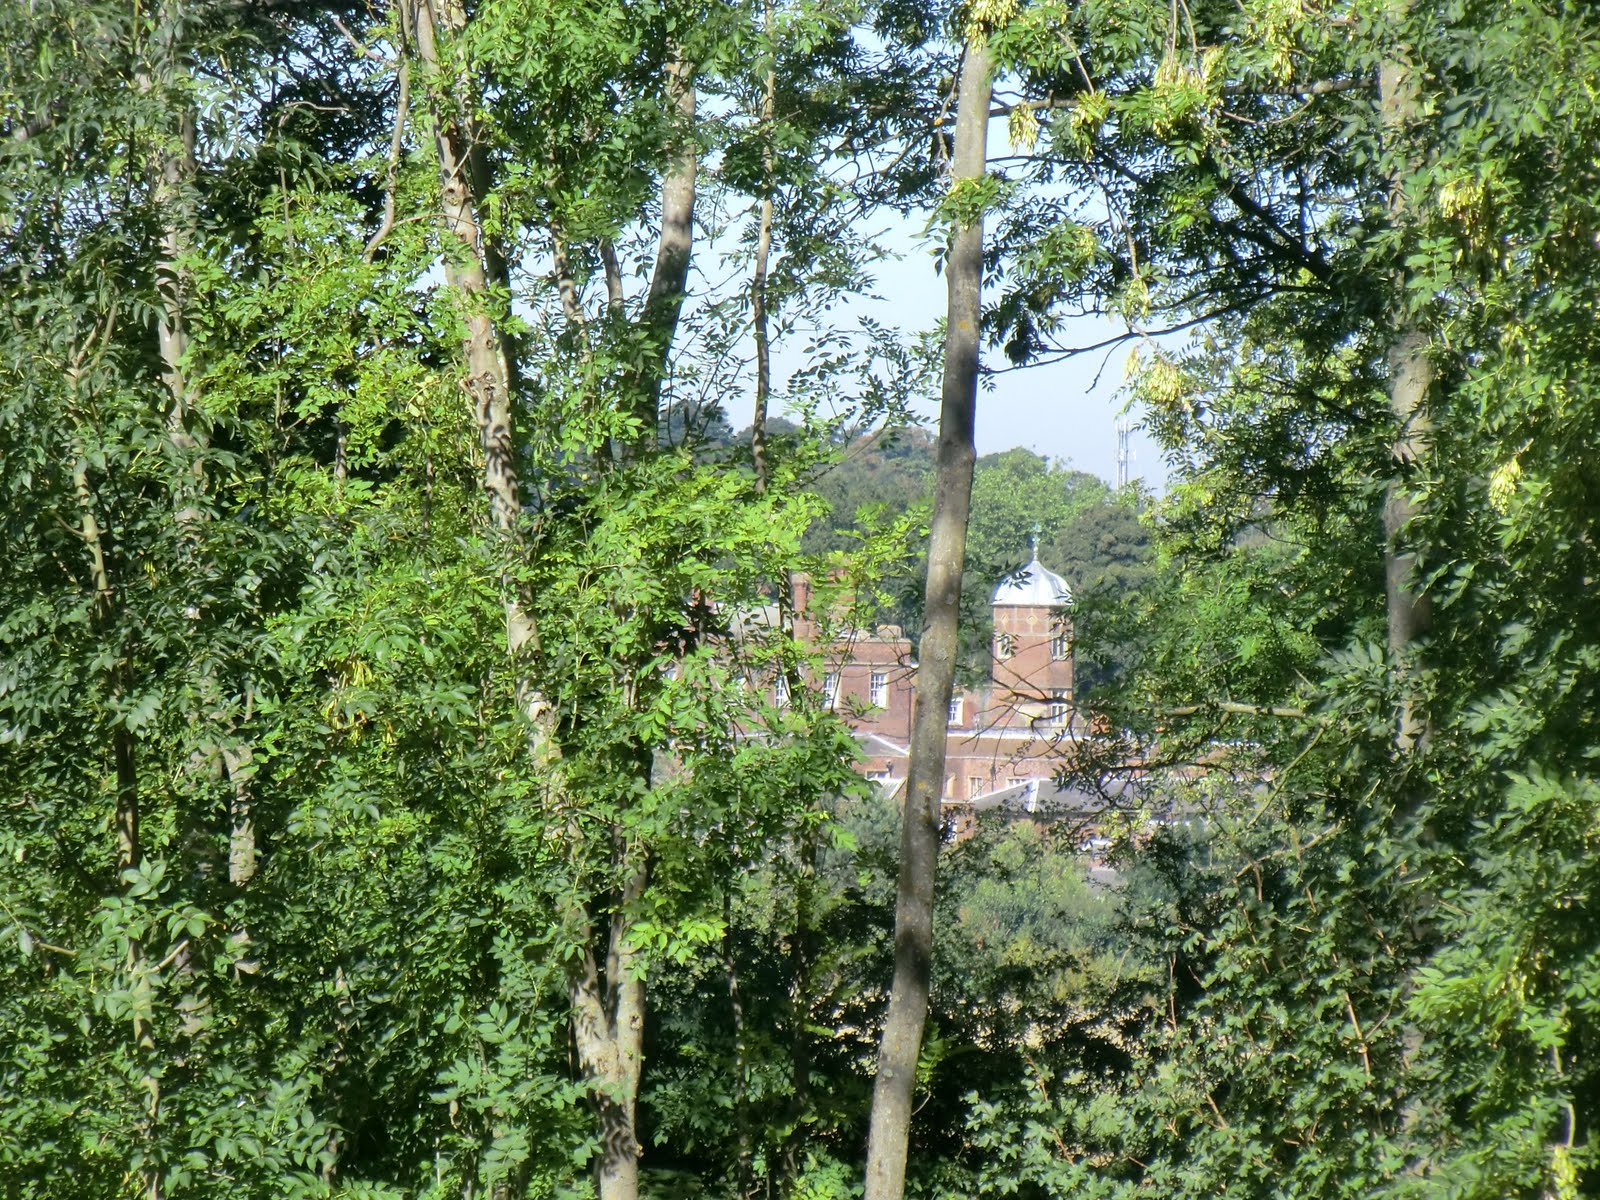 CIMG3875 Cobham Hall through the trees